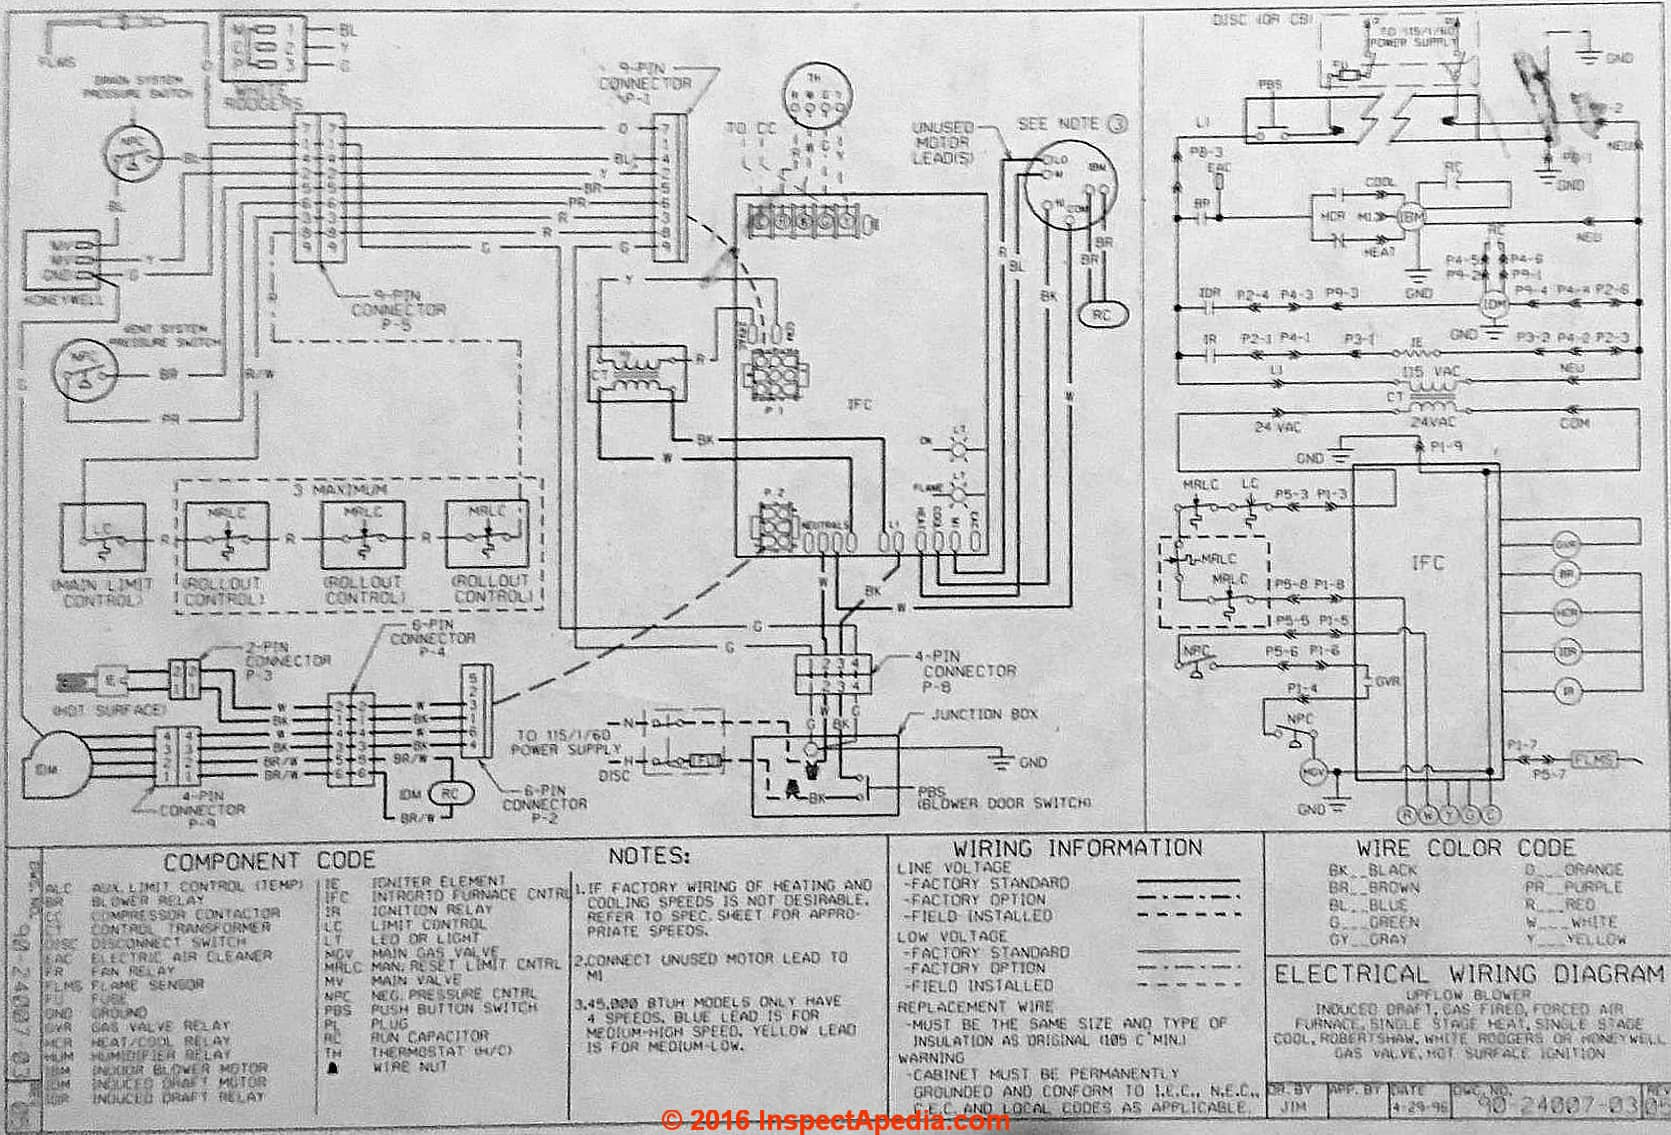 american standard gas furnace wiring diagrams images wiring rheem ac wiring diagram on intertherm heat pump